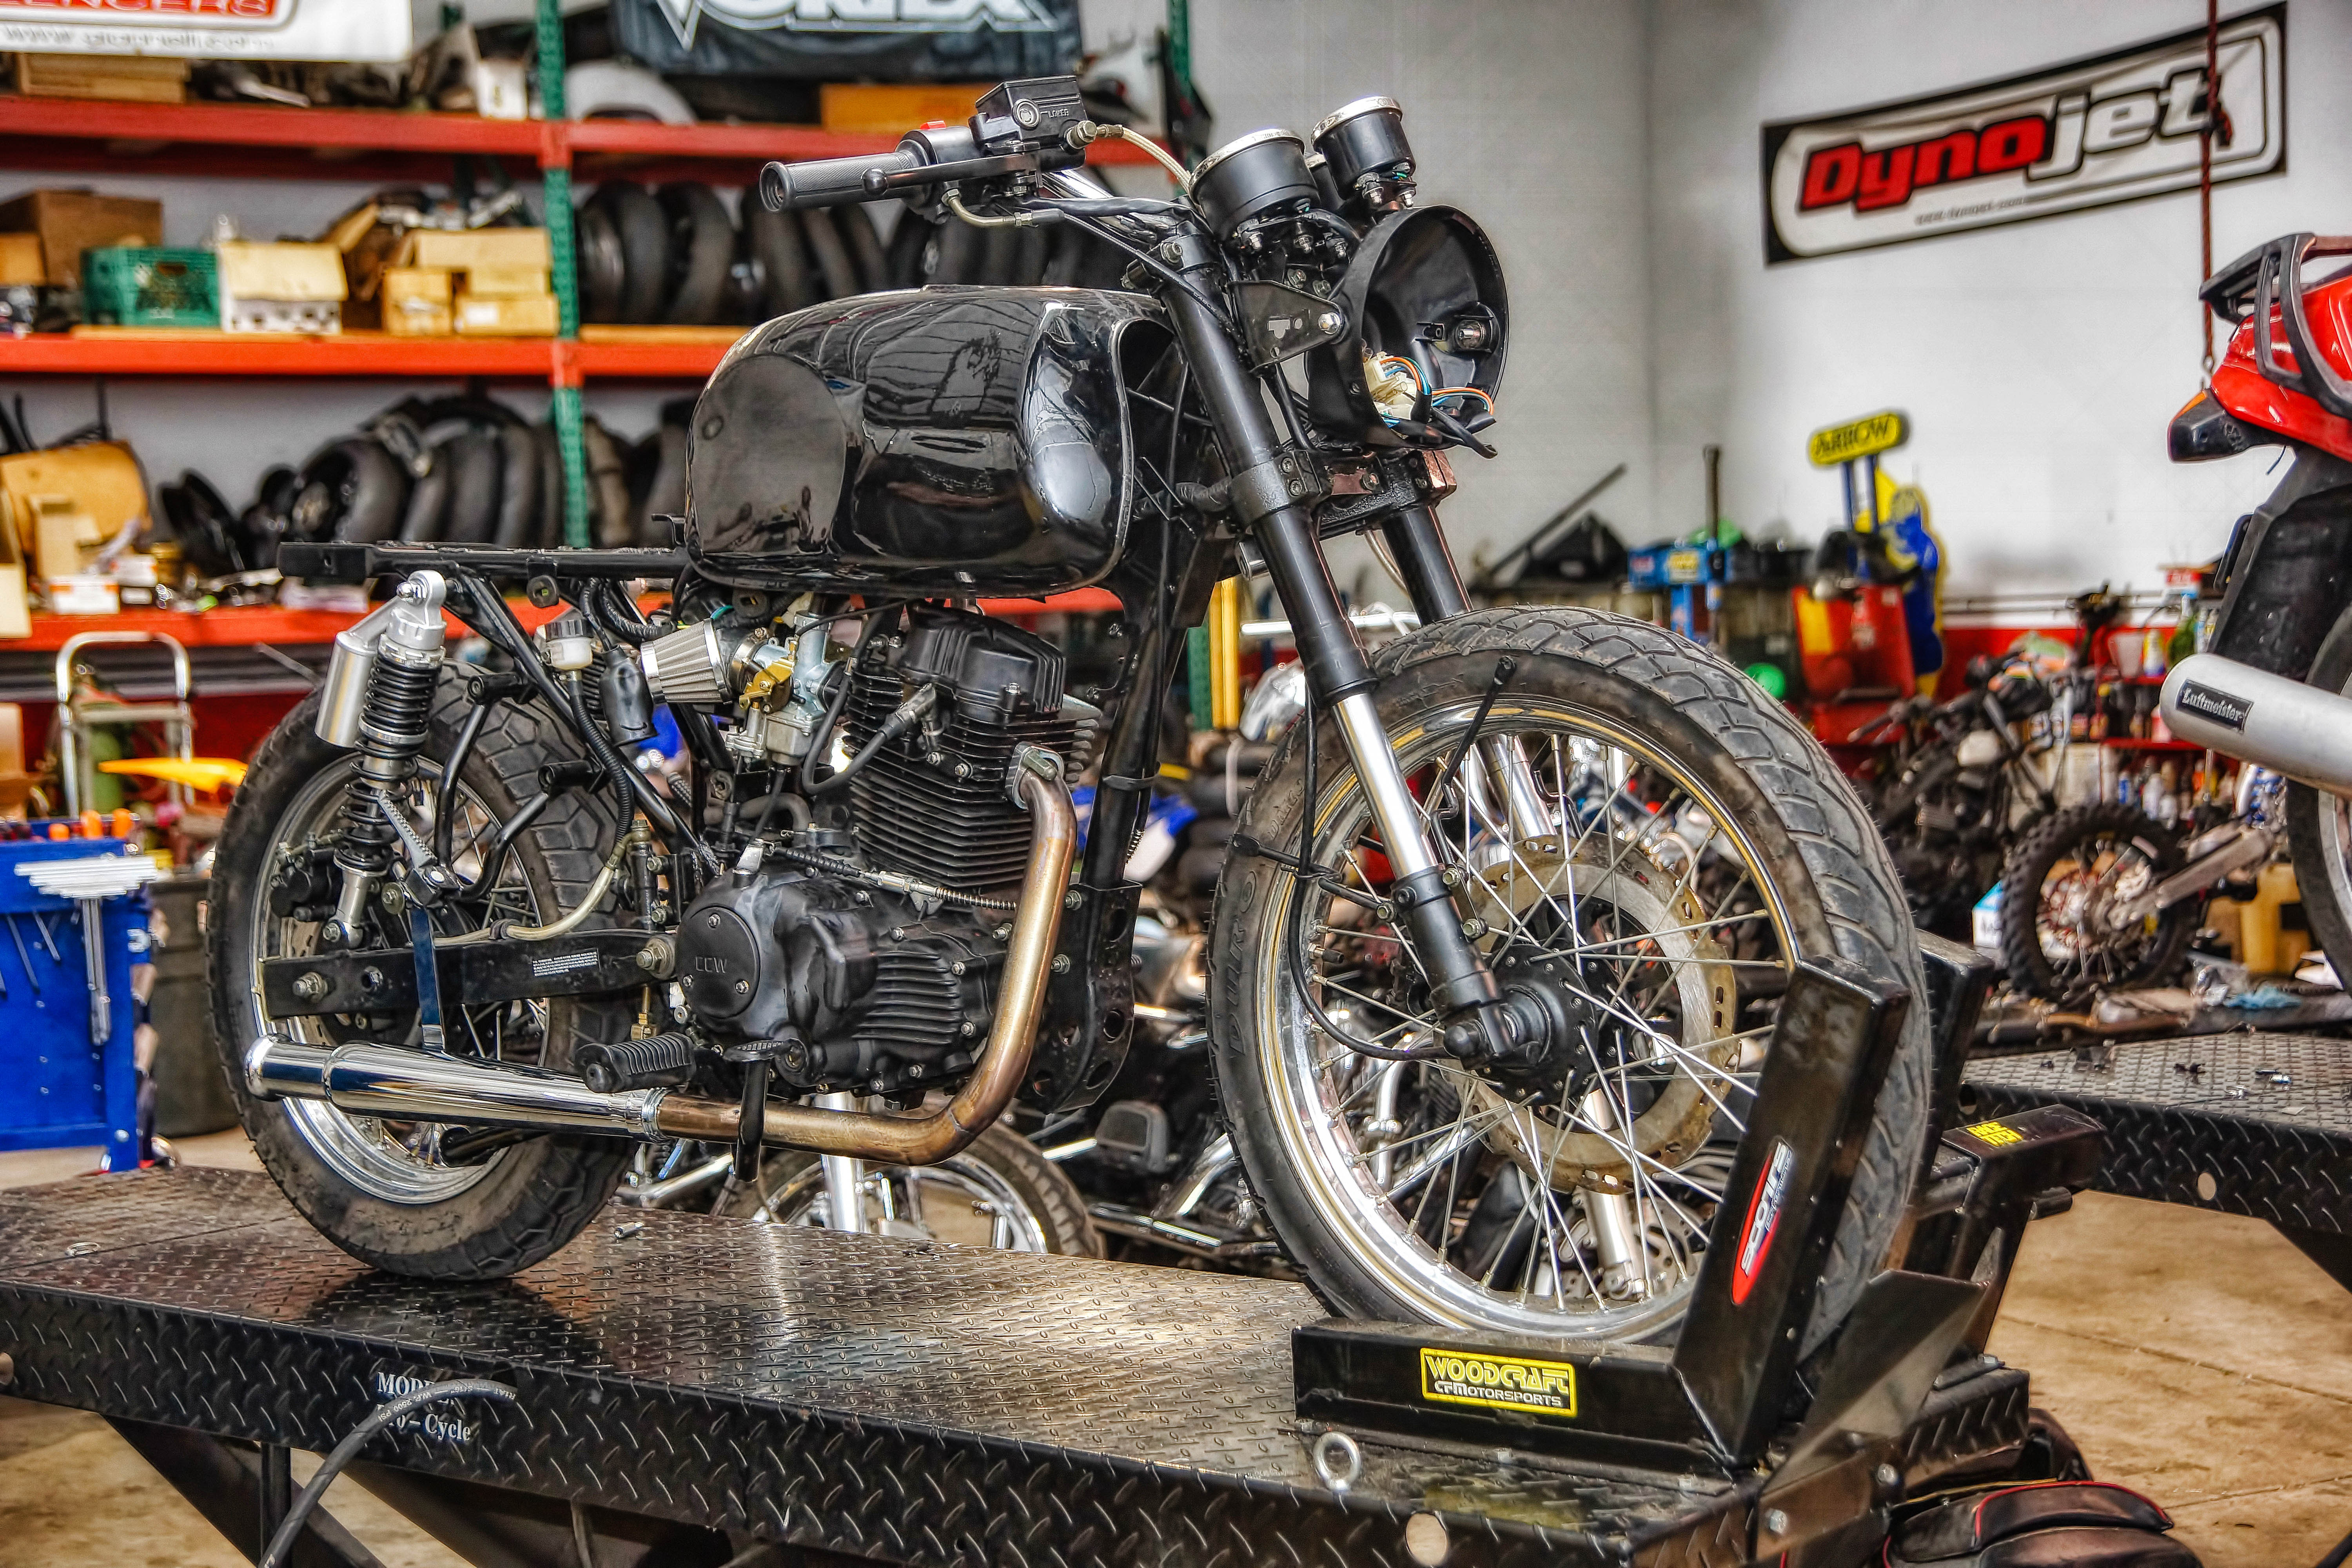 Cleveland CycleWerks Misfit images #70430